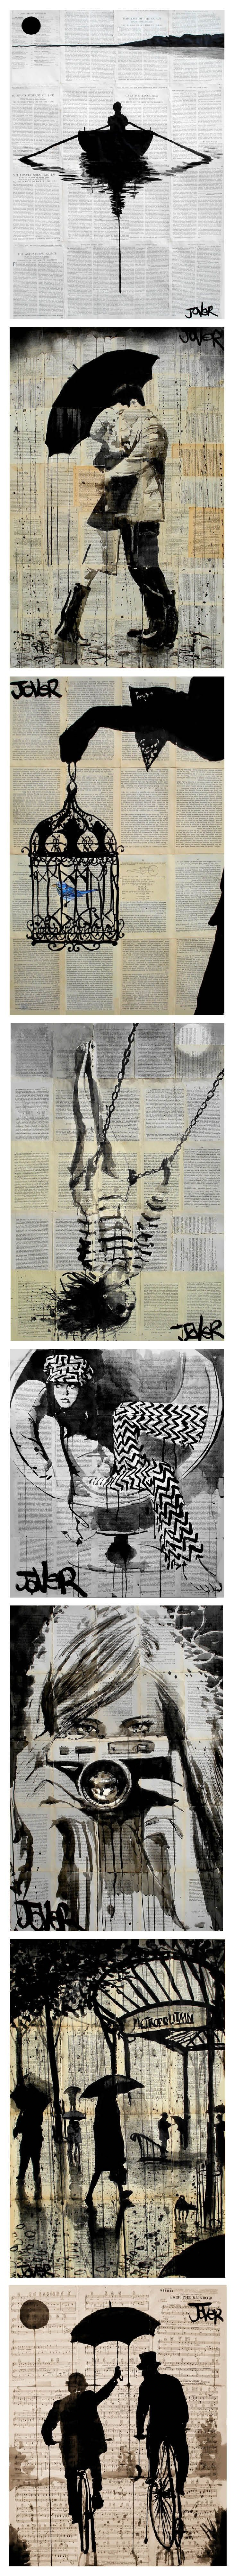 Art by Loui Jover - In Saatchi Online I love the newspaper and sheet music used in the backgrounds!: